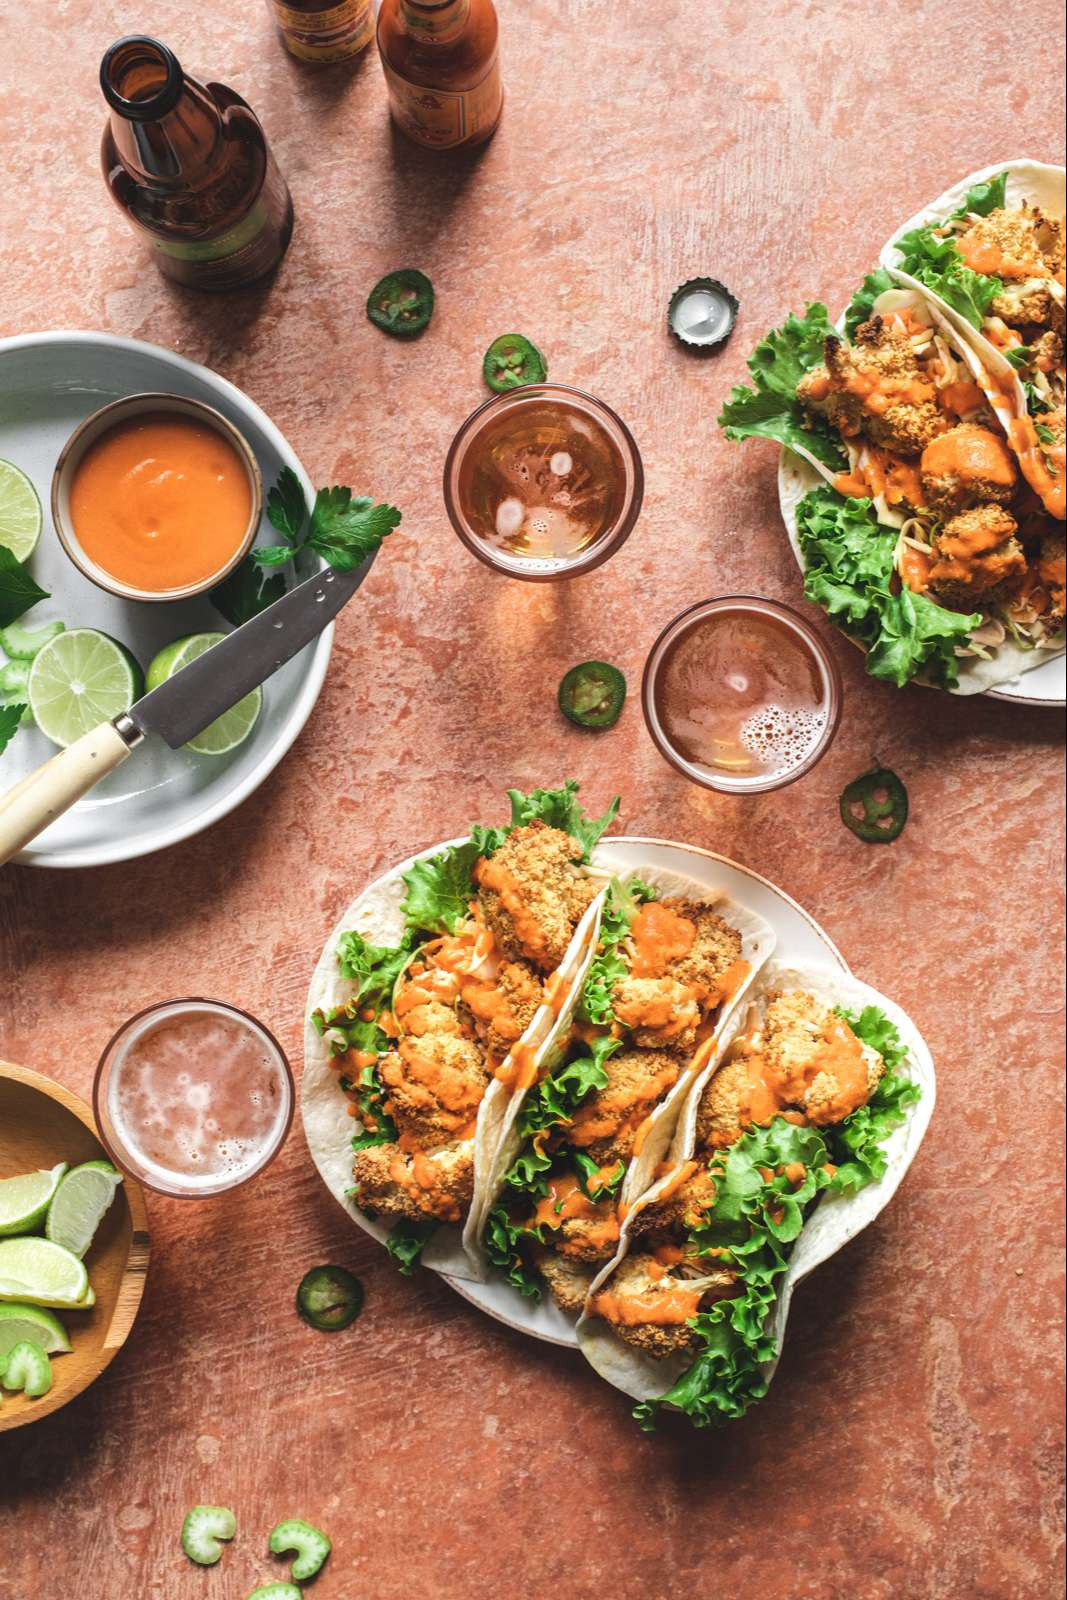 Hand pouring beer into a glass next to a plate of three buffalo cauliflower tacos and bowls of lettuce, jalapenos and extra buffalo sauce